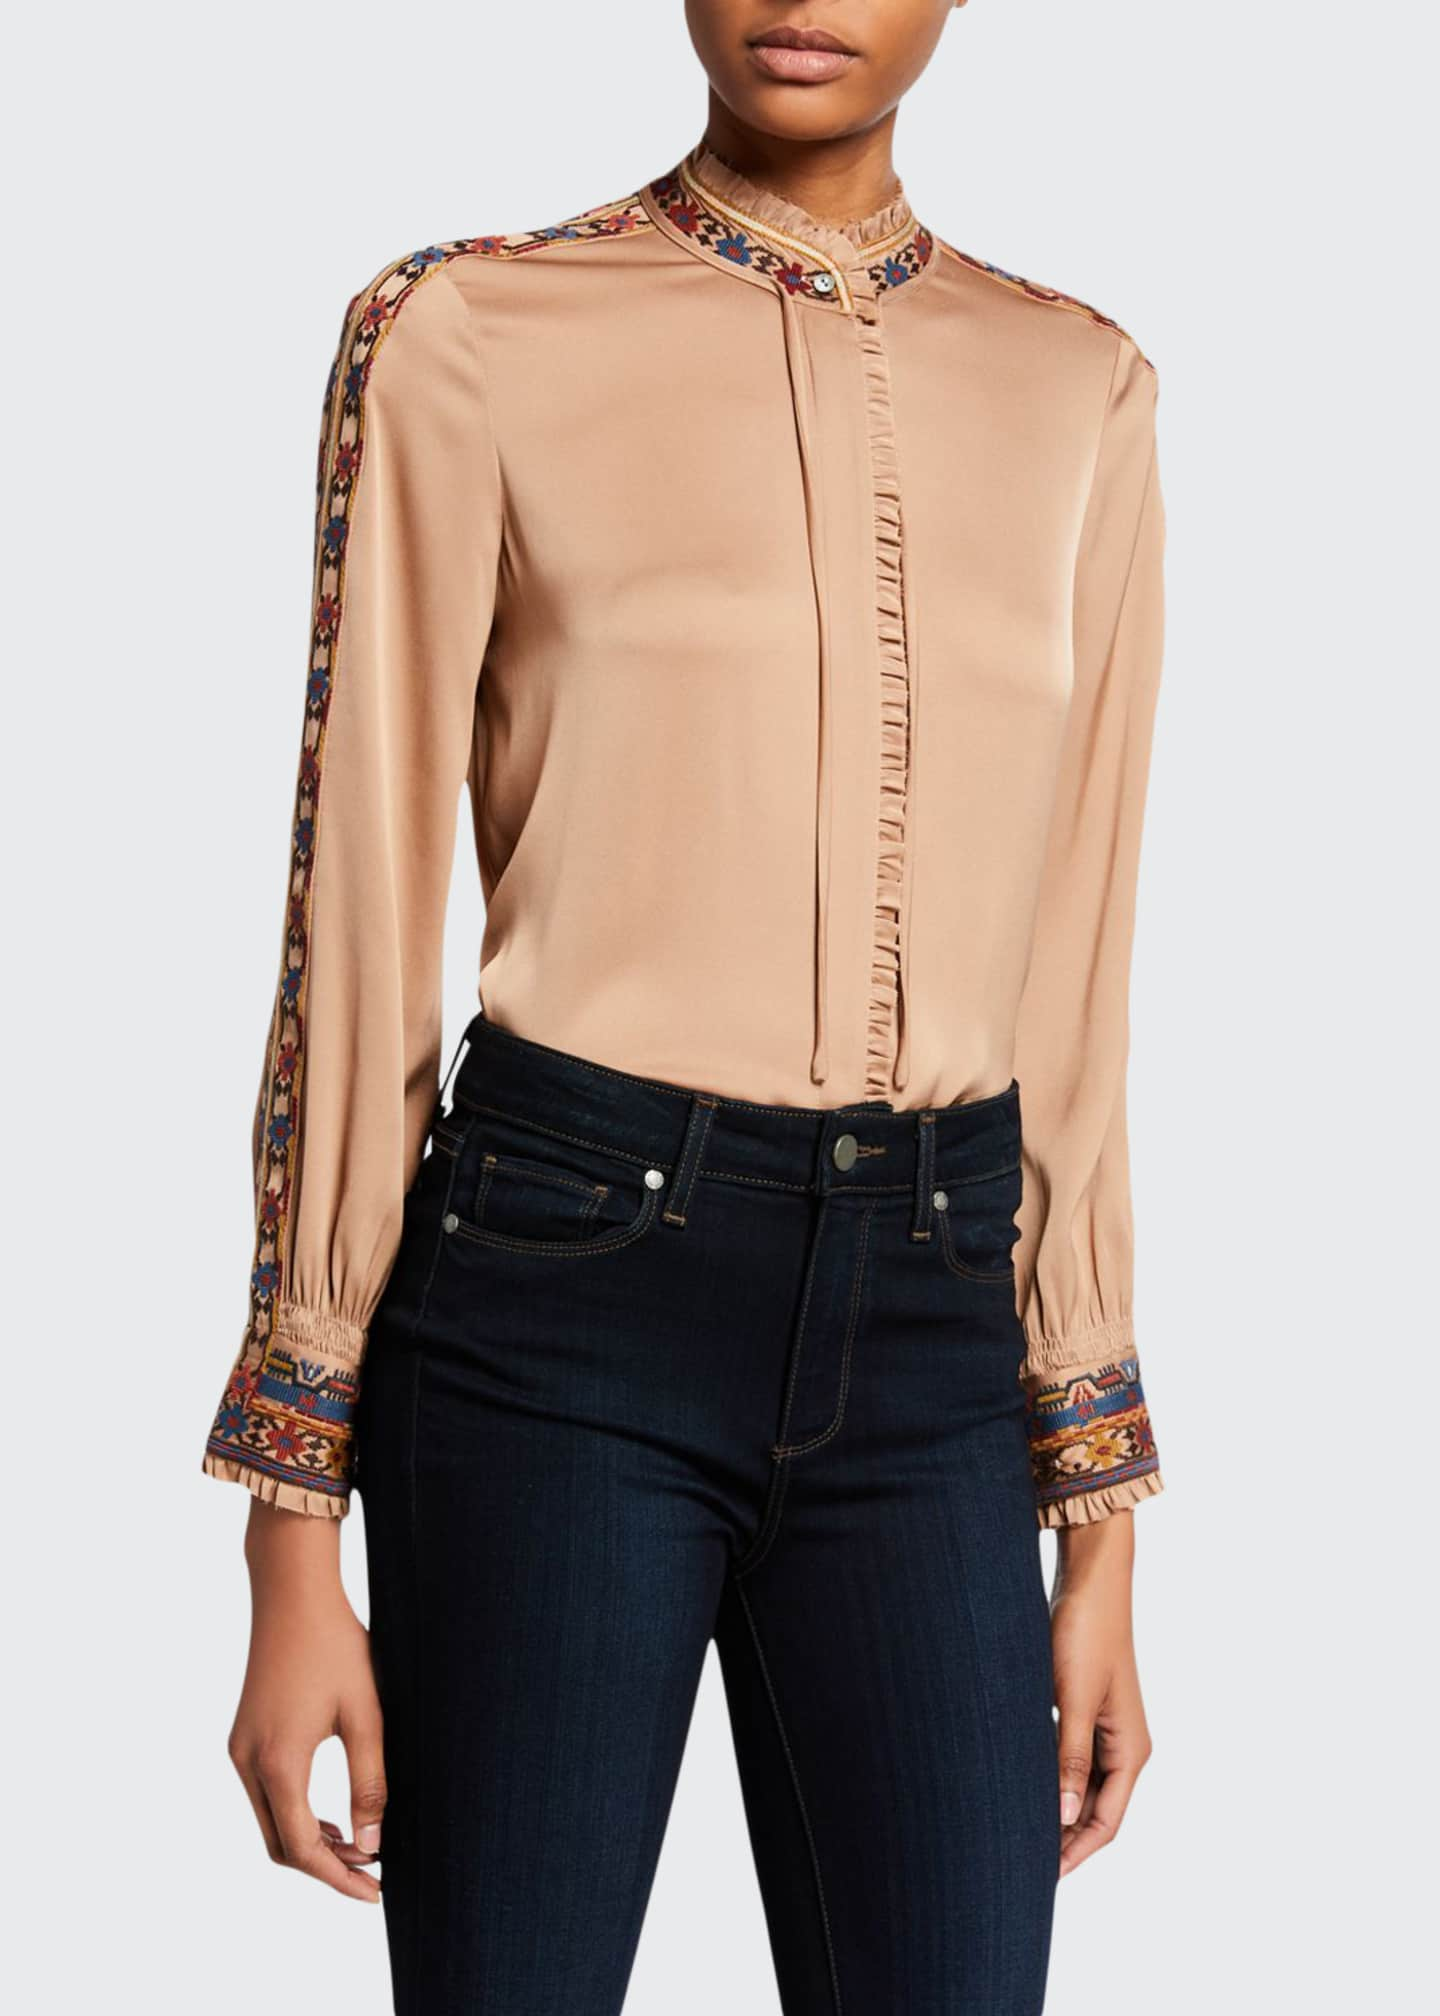 Kobi Halperin Owen Mock-Neck Long-Sleeve Silk Blouse